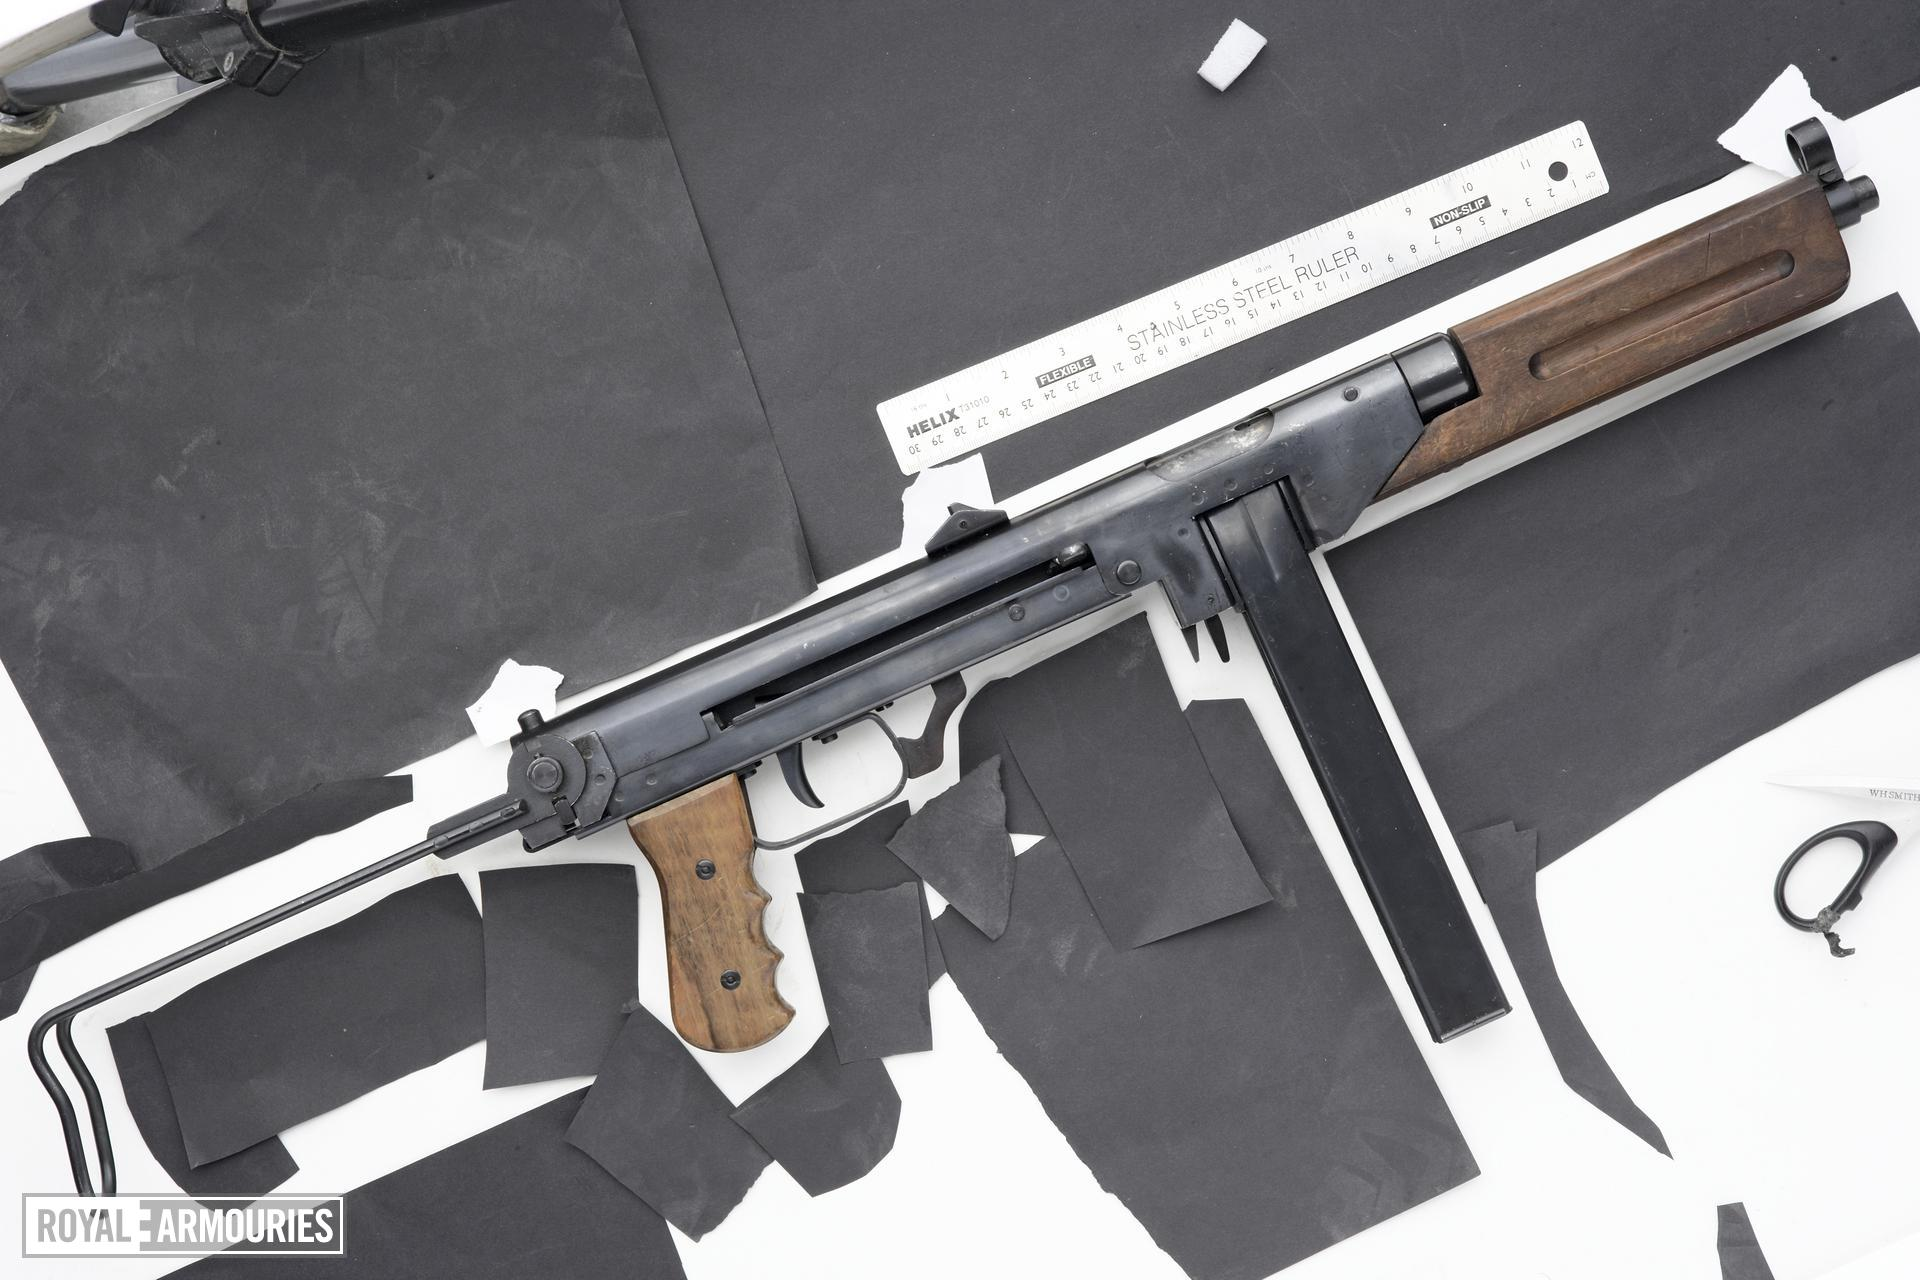 Centrefire automatic deactivated submachine gun - Dux 53